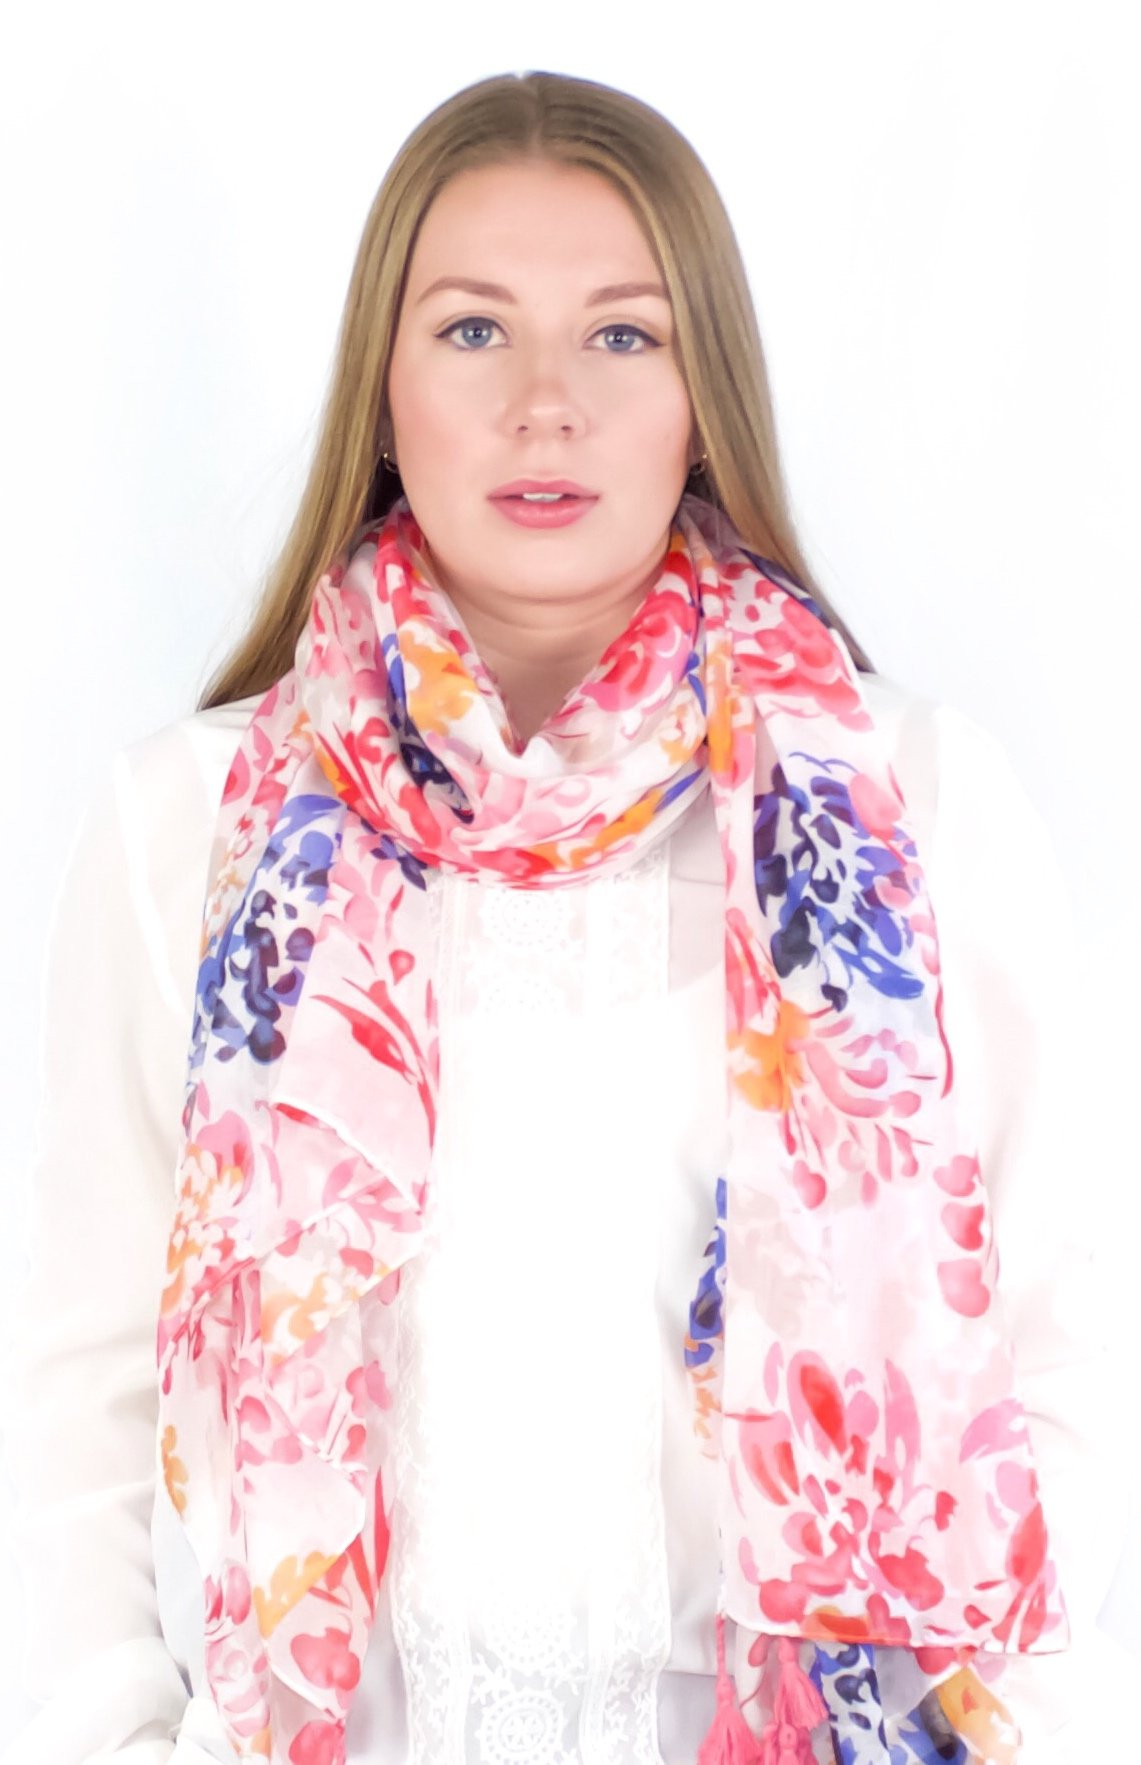 ÉCHARPE Women's Soft Scarf/Hijab with Tassels - Spring Pink